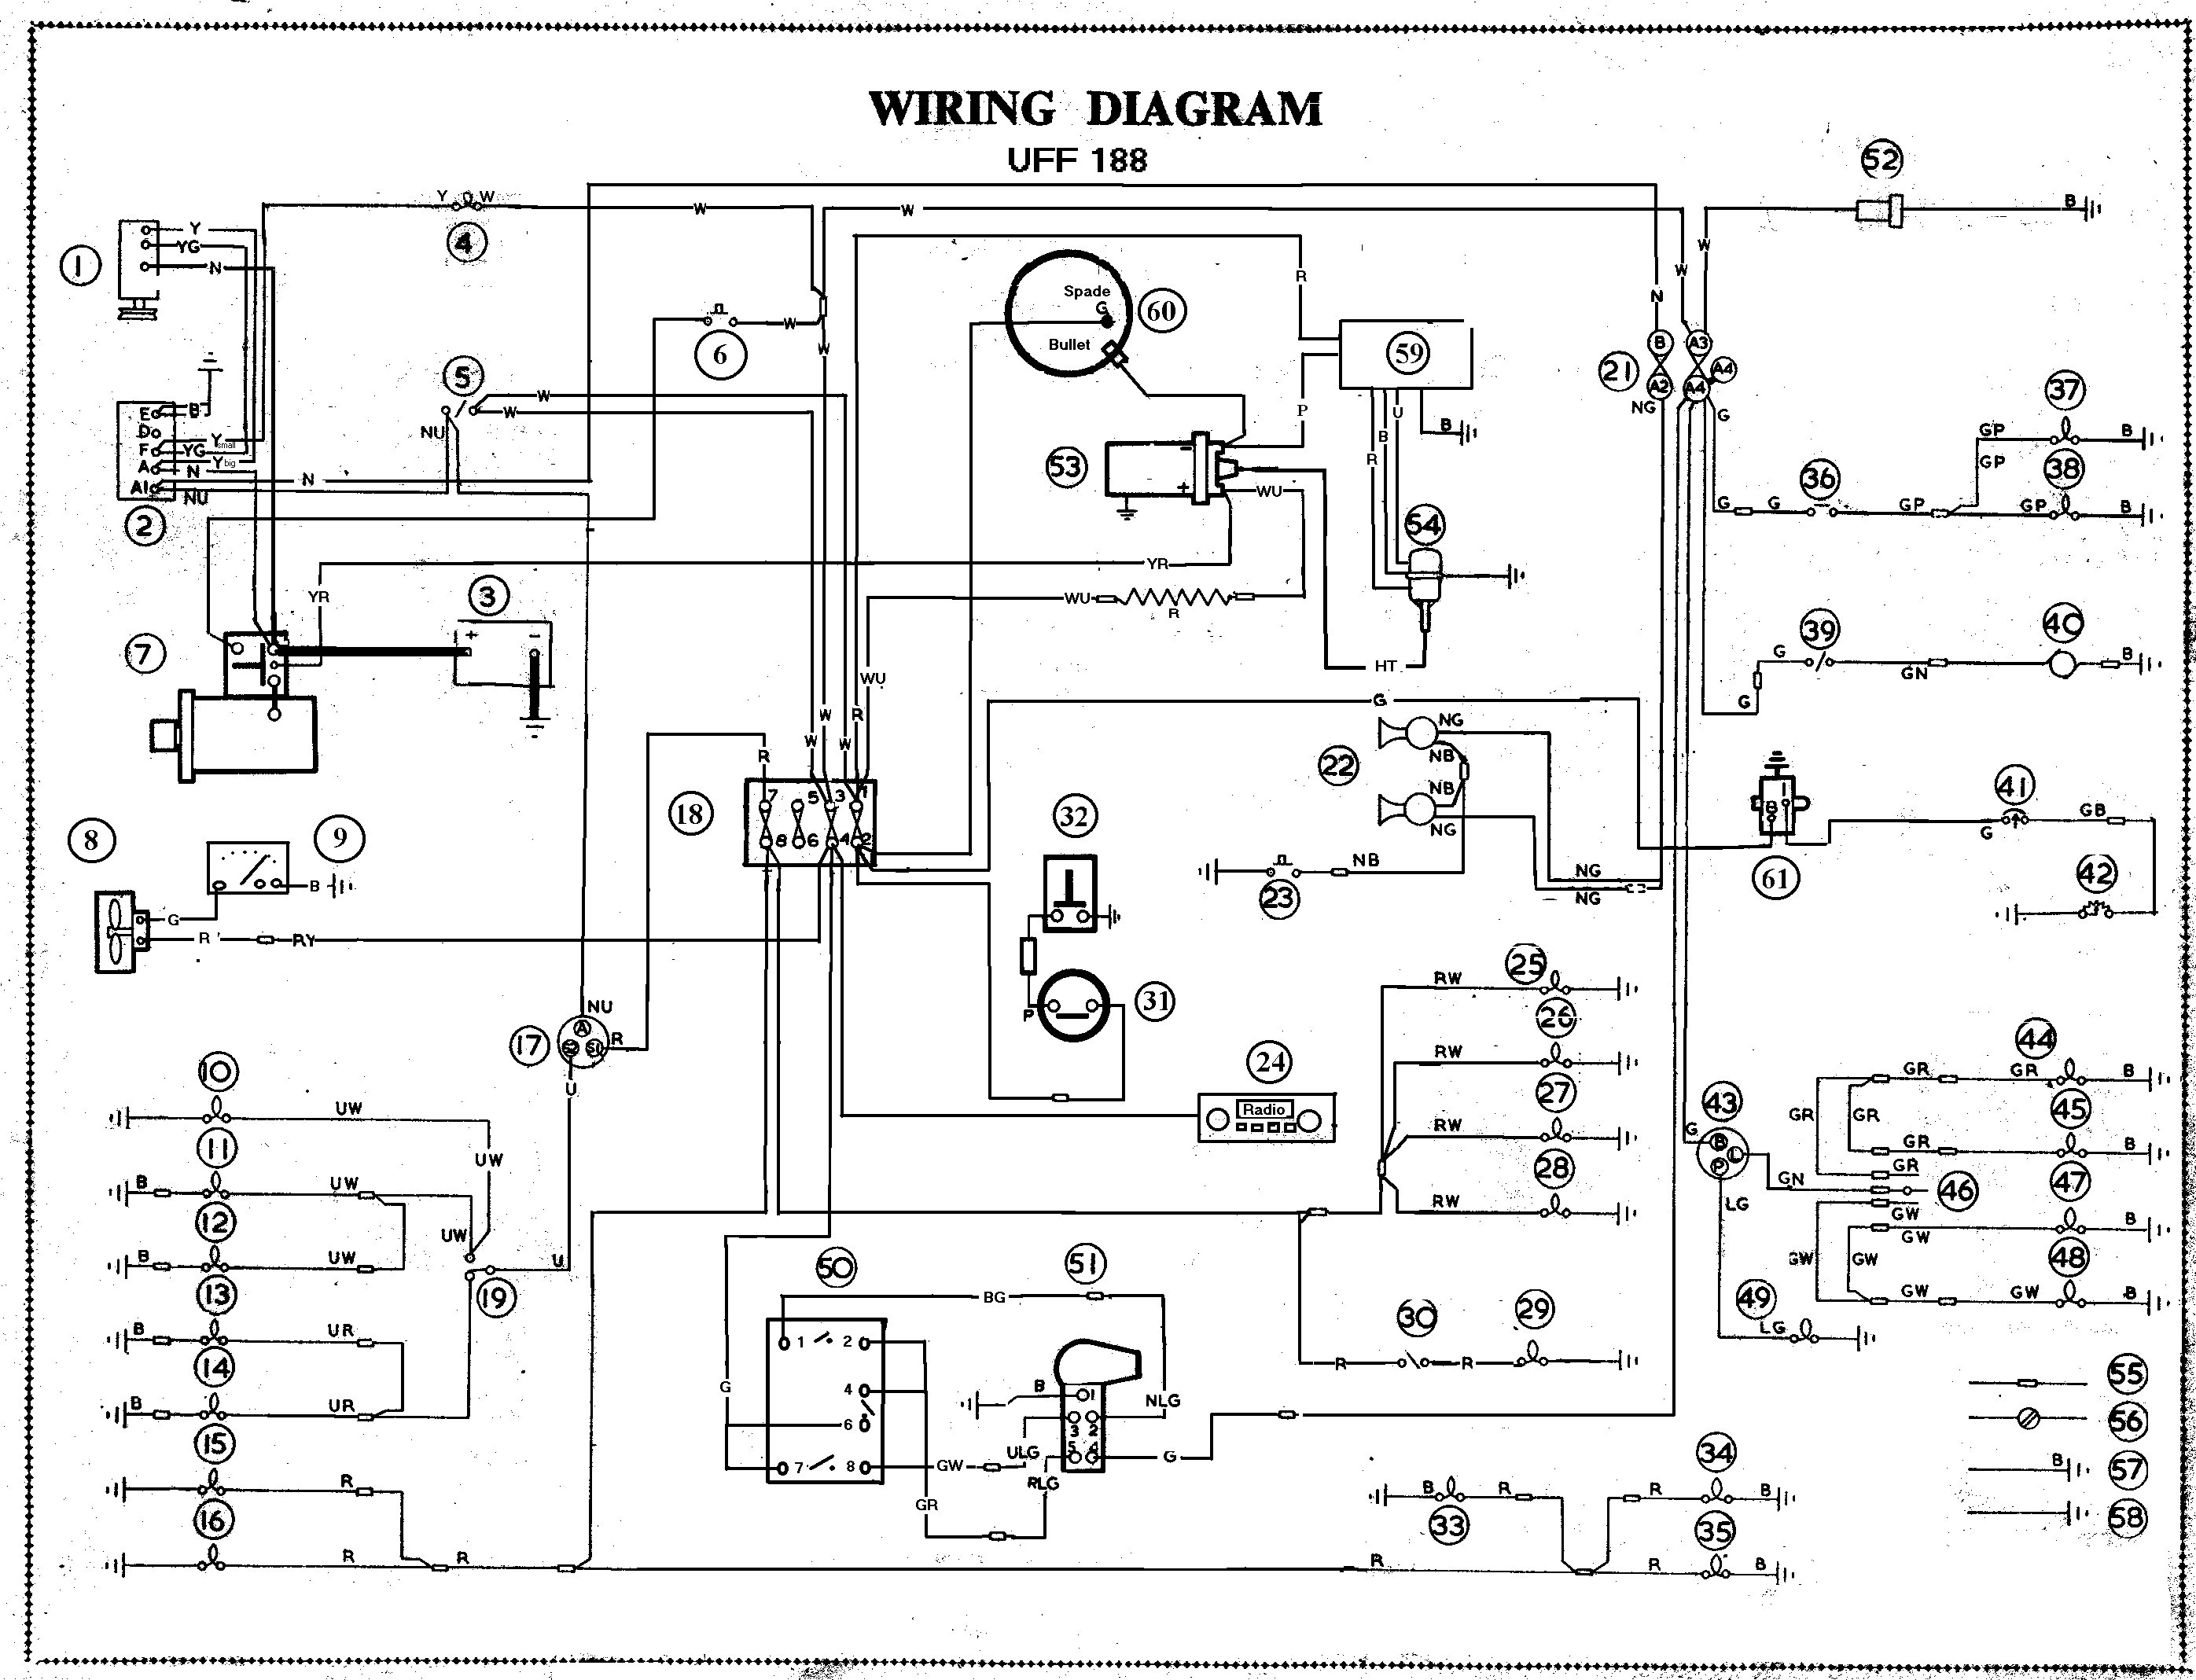 Gem Car Wiring Schematic - Wiring Diagram Electric toy Car Best 1999 Gem Car Wiring Diagram Wire Center • 14f